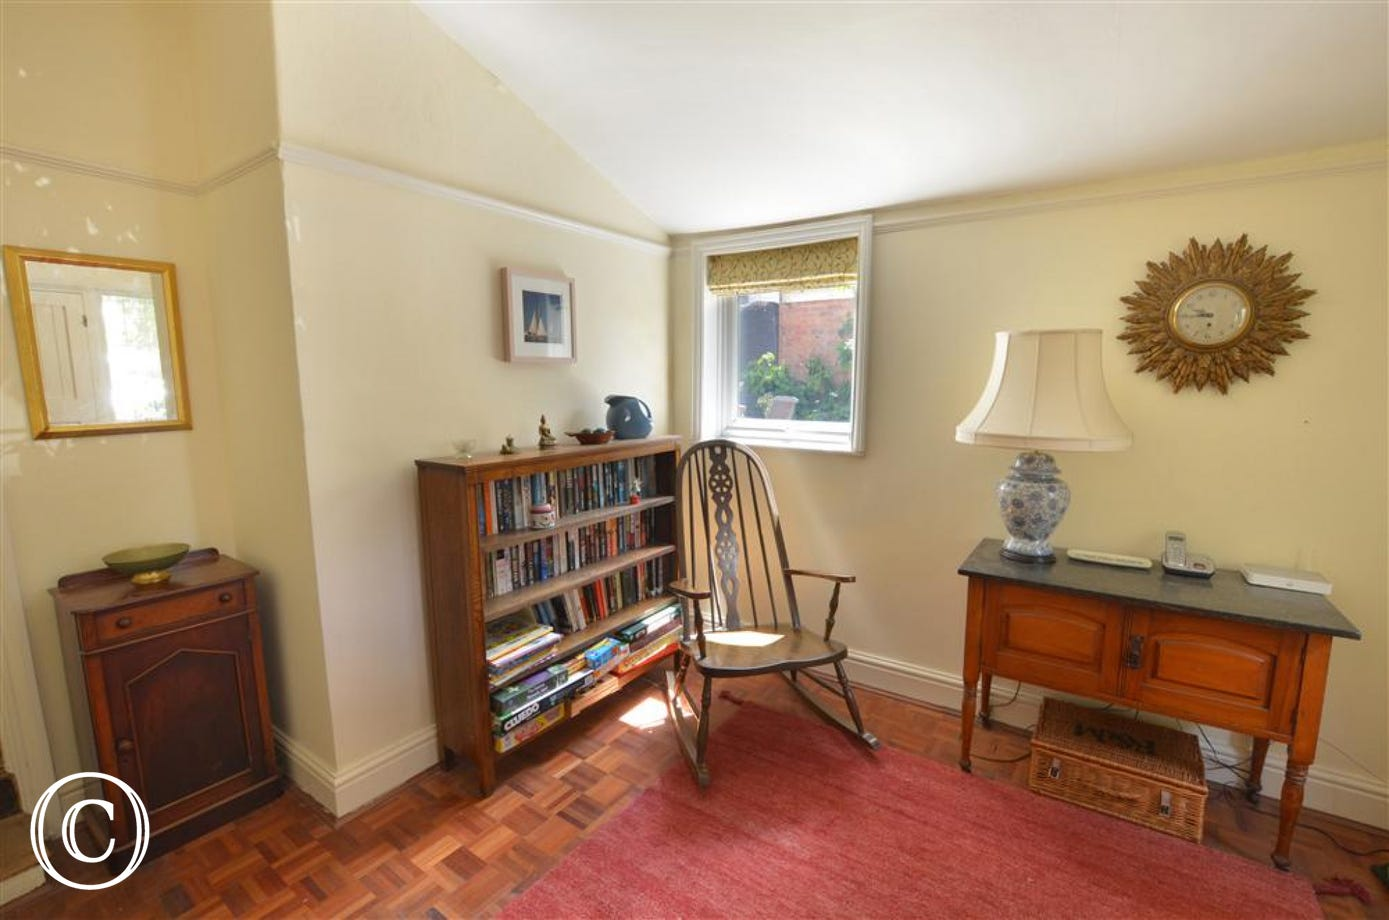 View of entrance Hall, with rocking chair, book shelf, side tables and lamp.